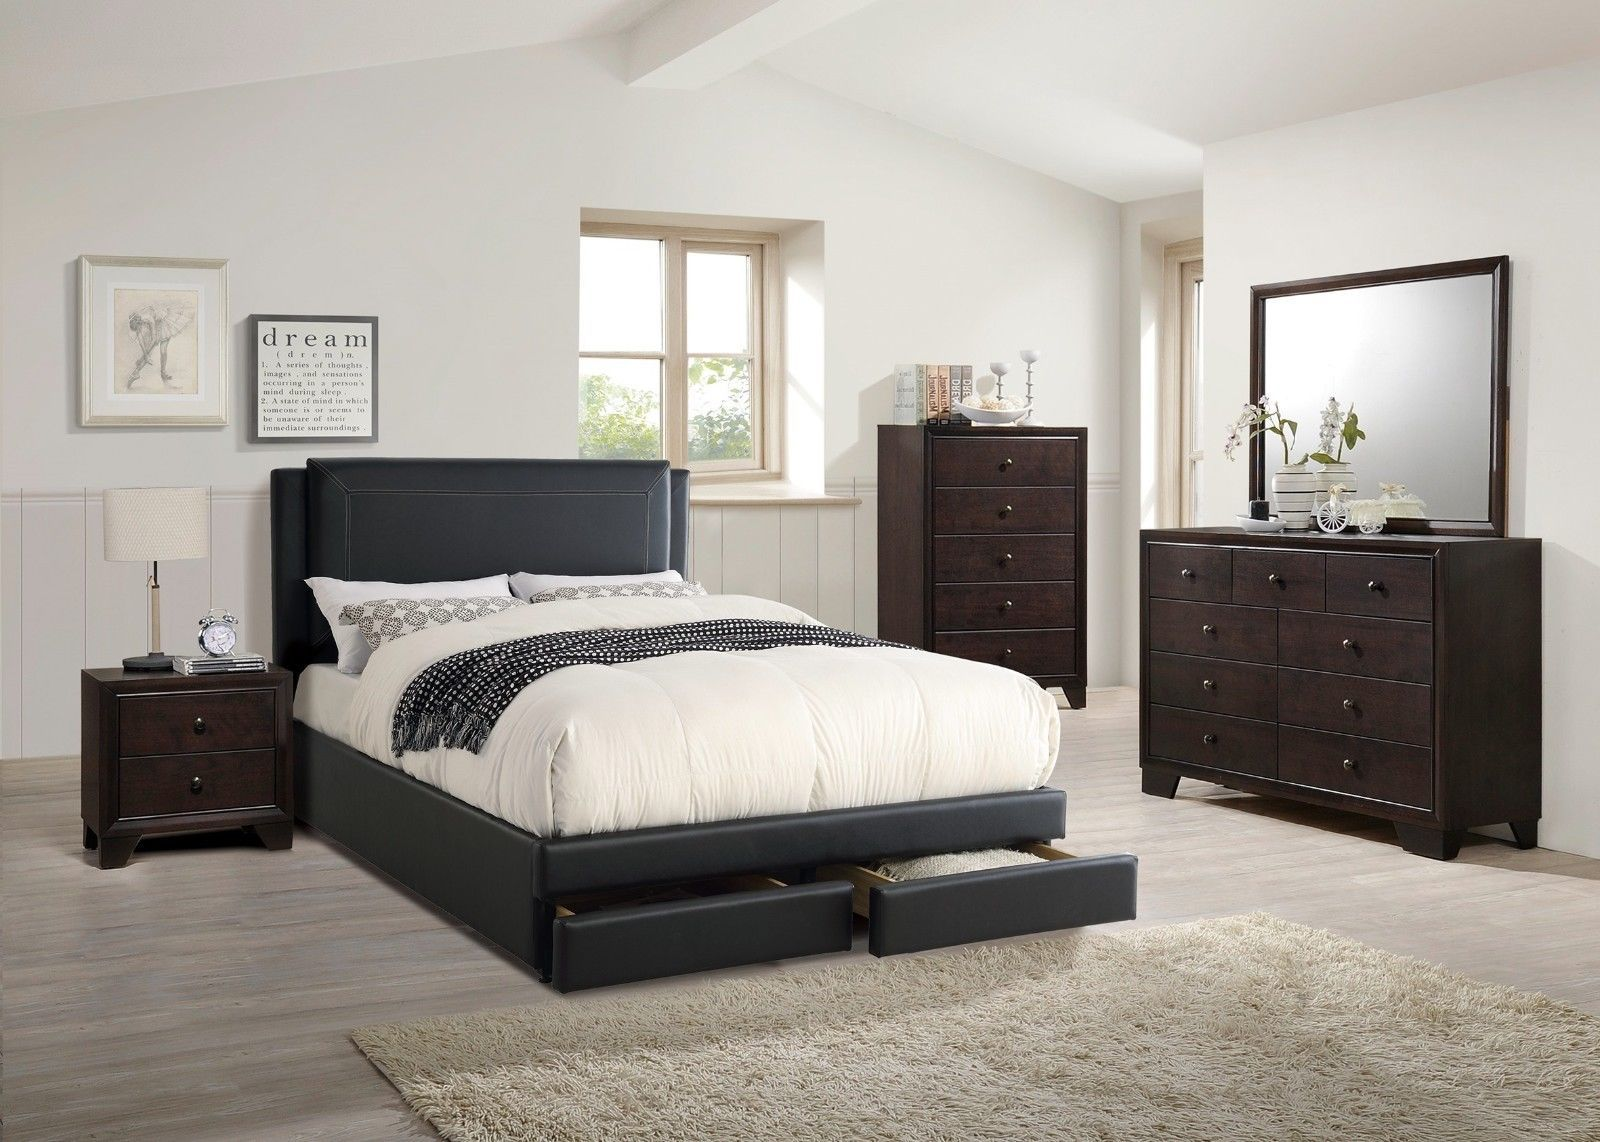 Cal King Size Storage Bed Dresser Mirror Nightstand 4p Bedroom Set ...